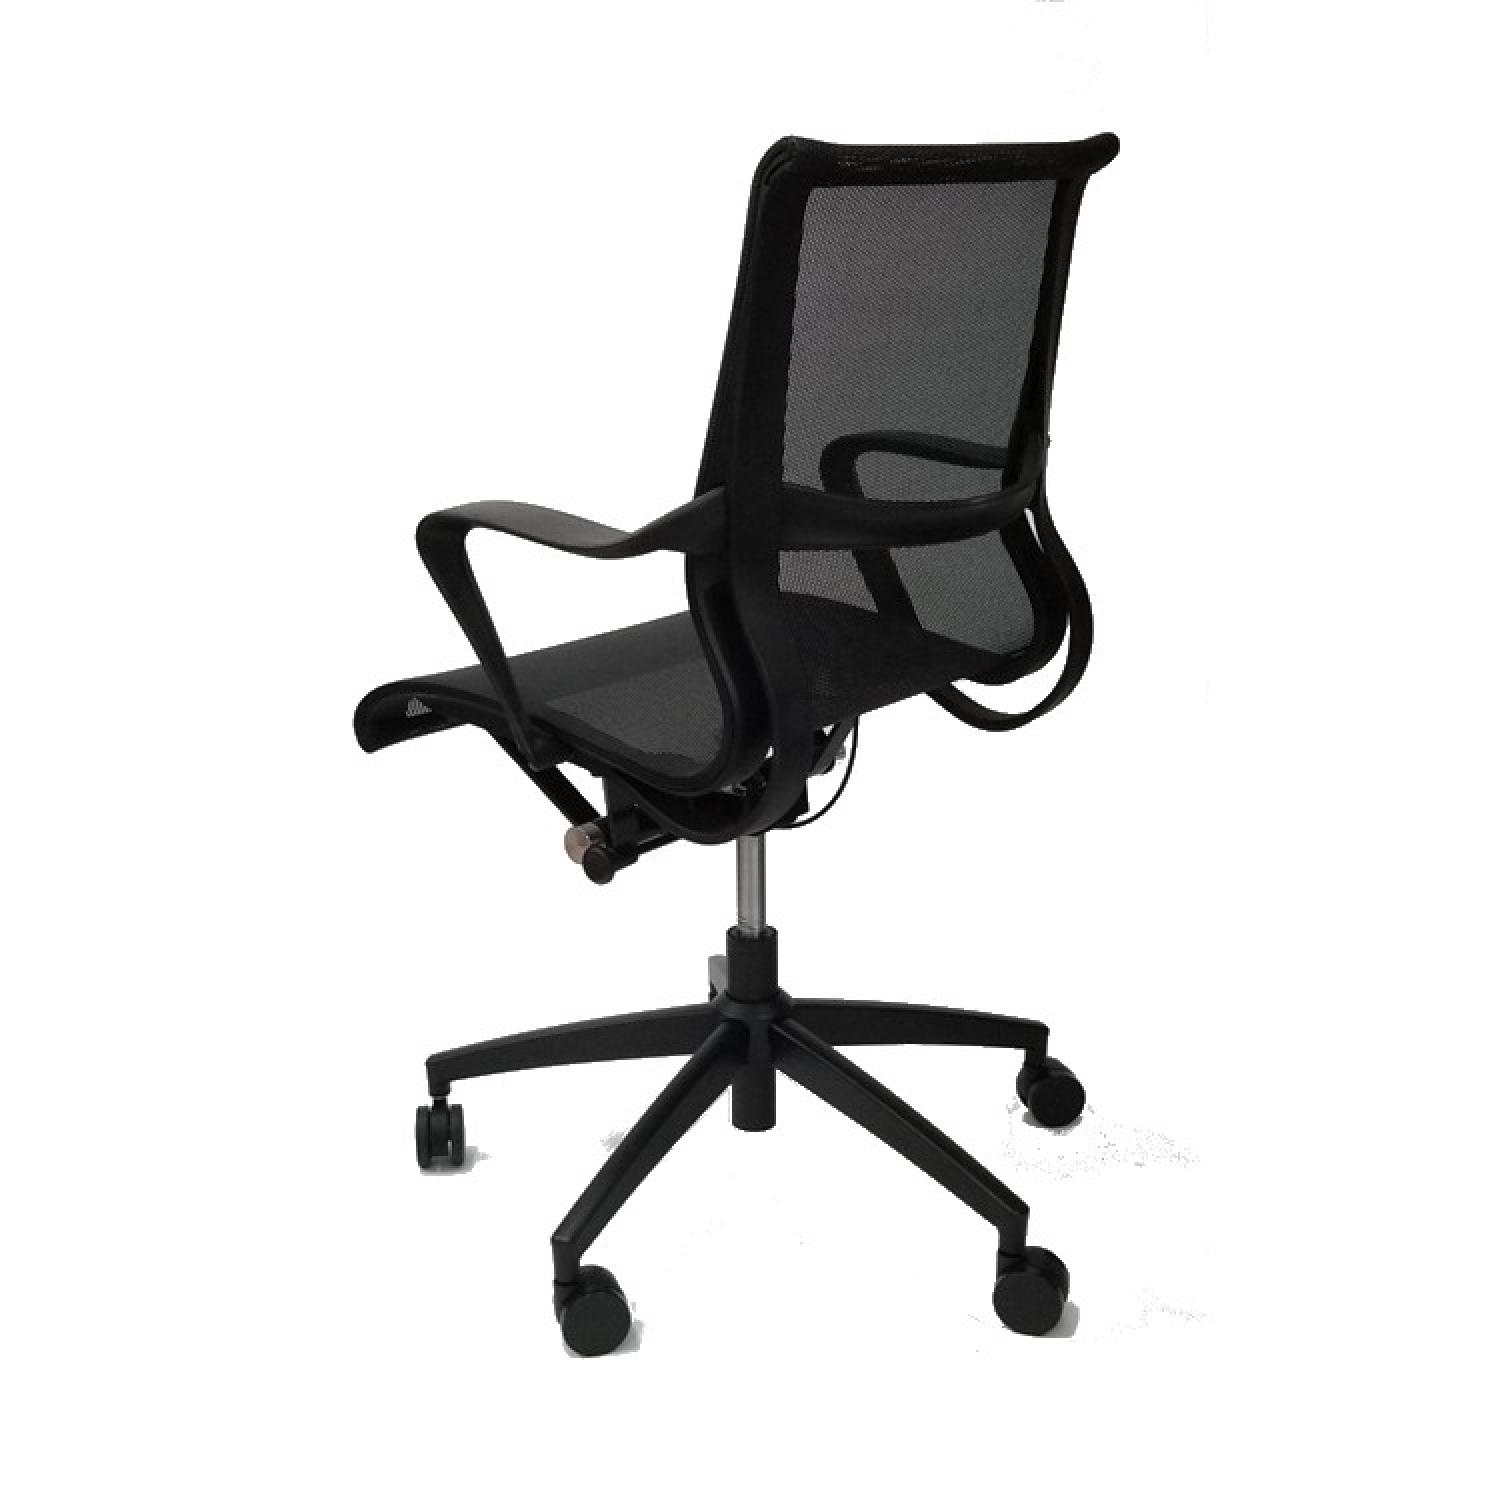 Modern Office Chair w/ Armrests & Black Mesh Fabric - image-4